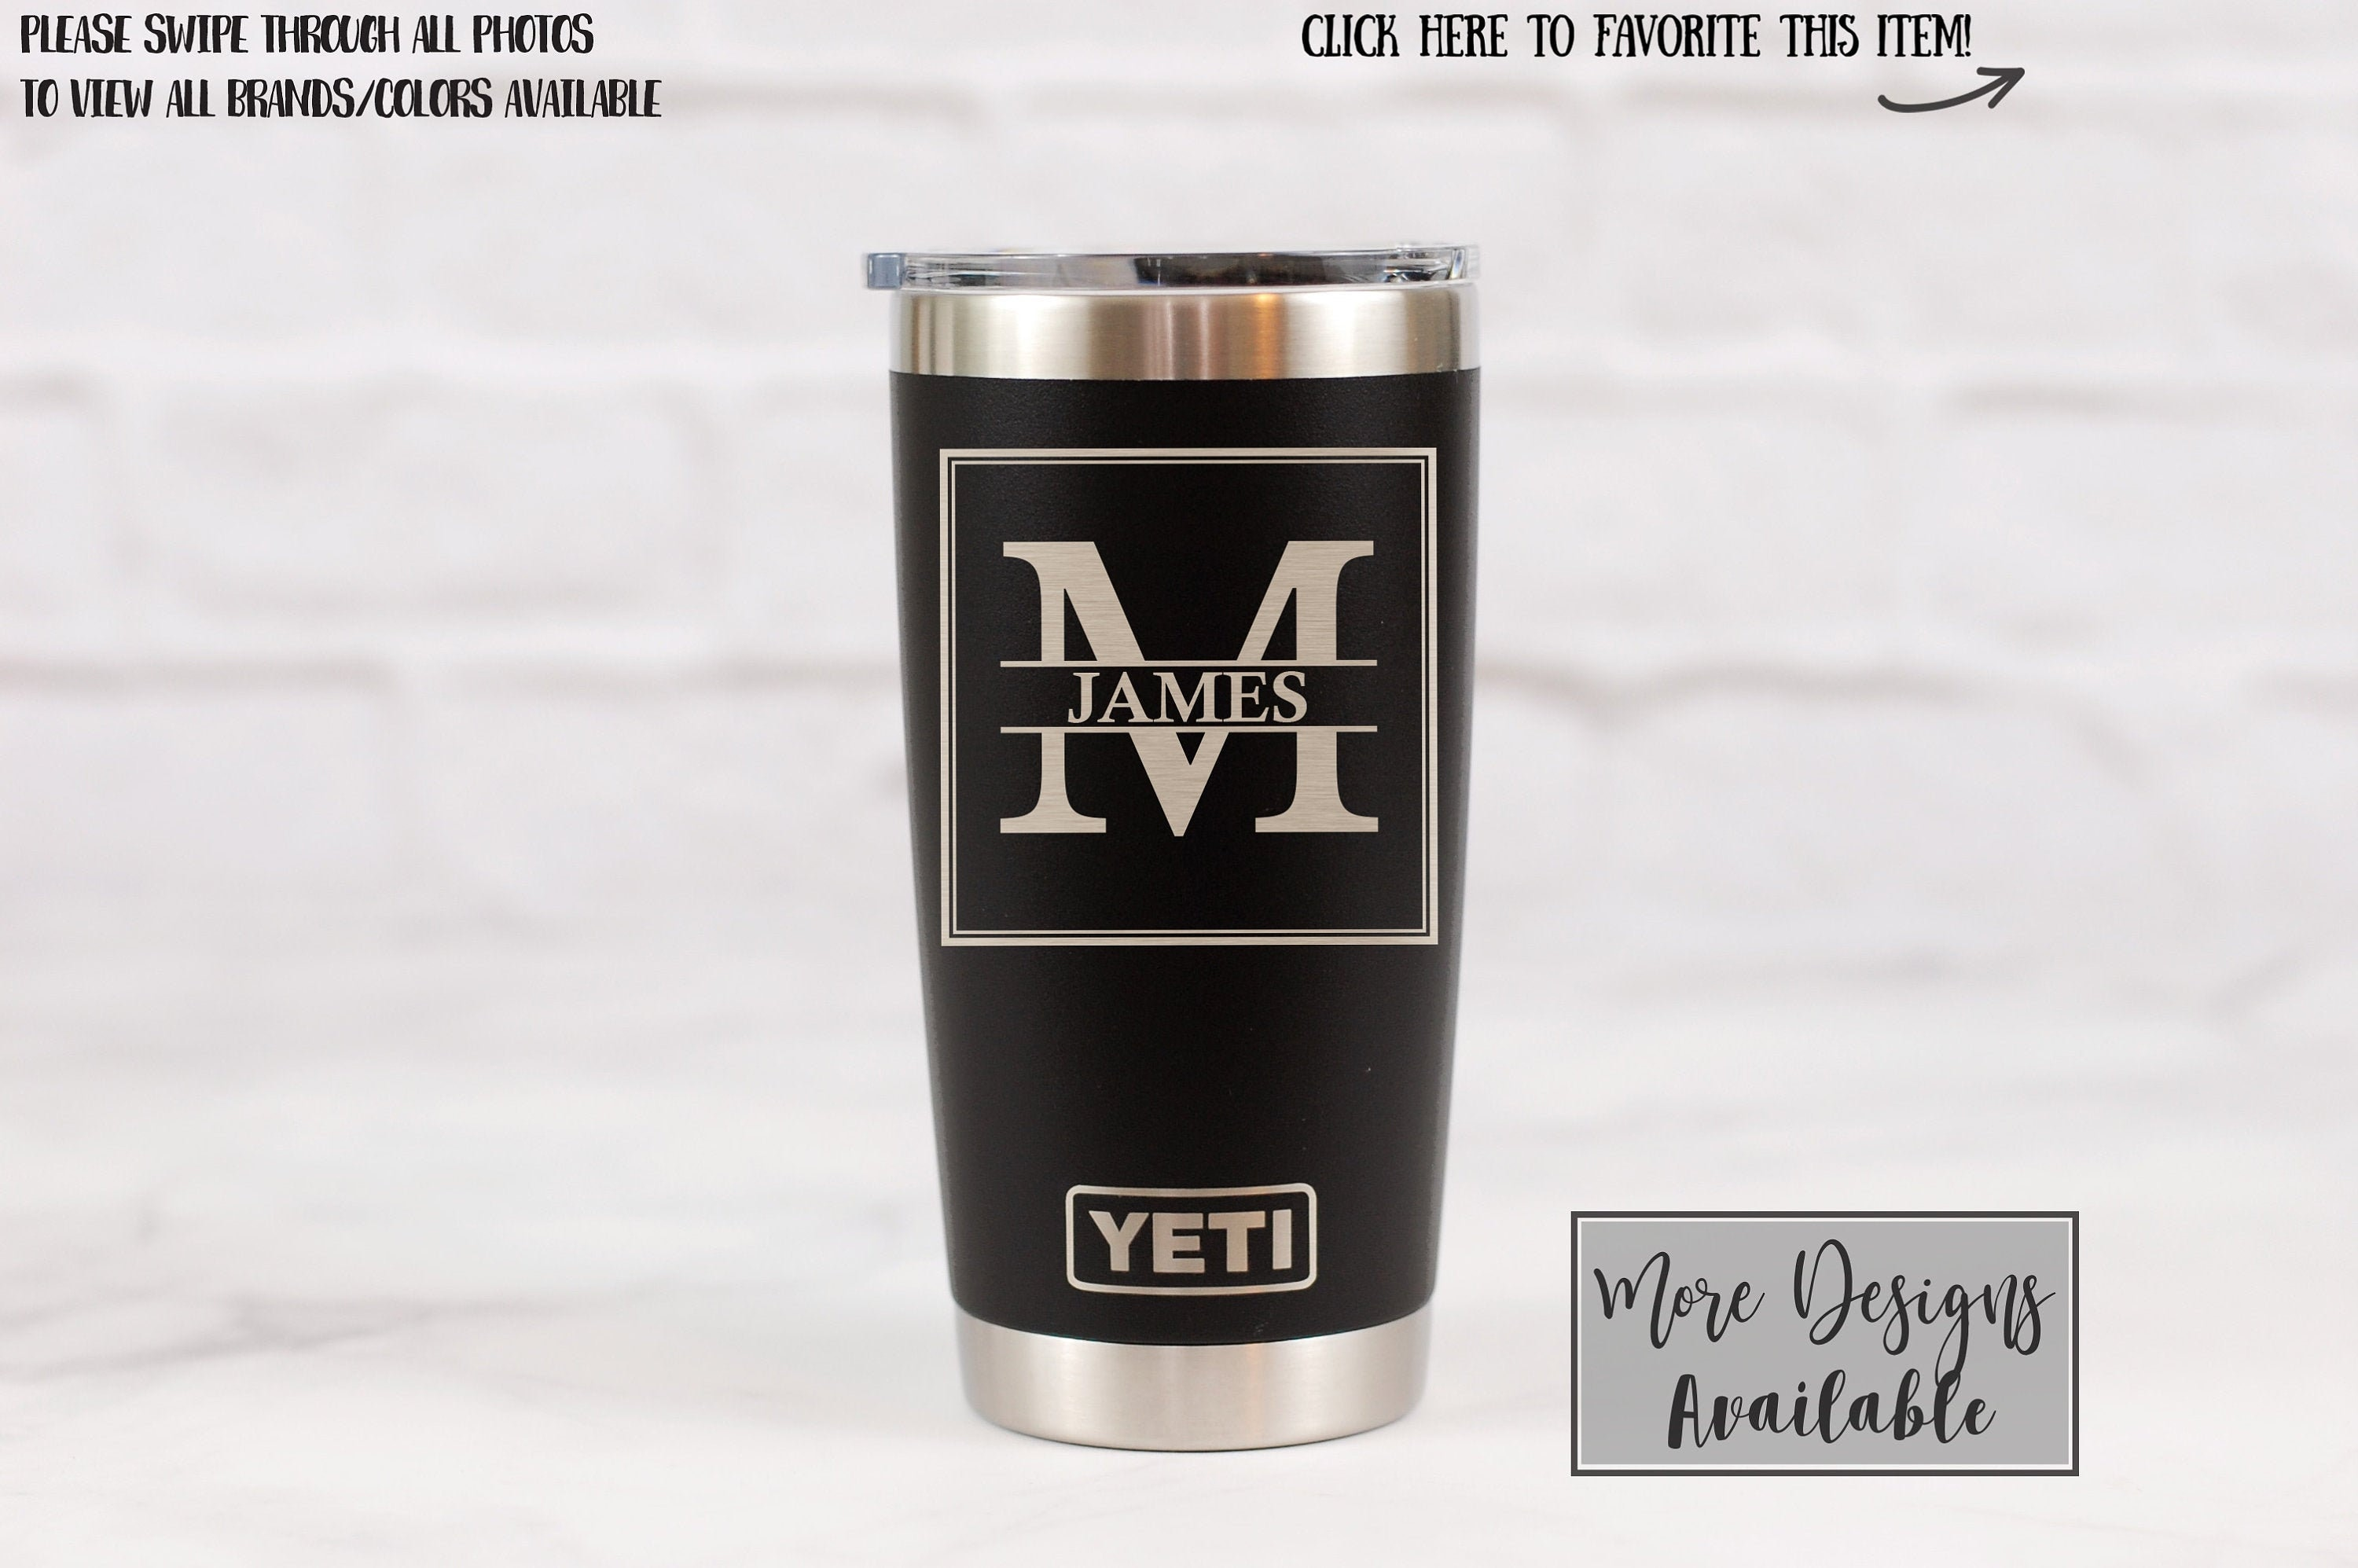 Personalized Yeti Tumbler Fathers Day Gift Idea Fathers Day Gift For Him Mothers Day Day Gift For Her Gift For Dad Gift For Mom